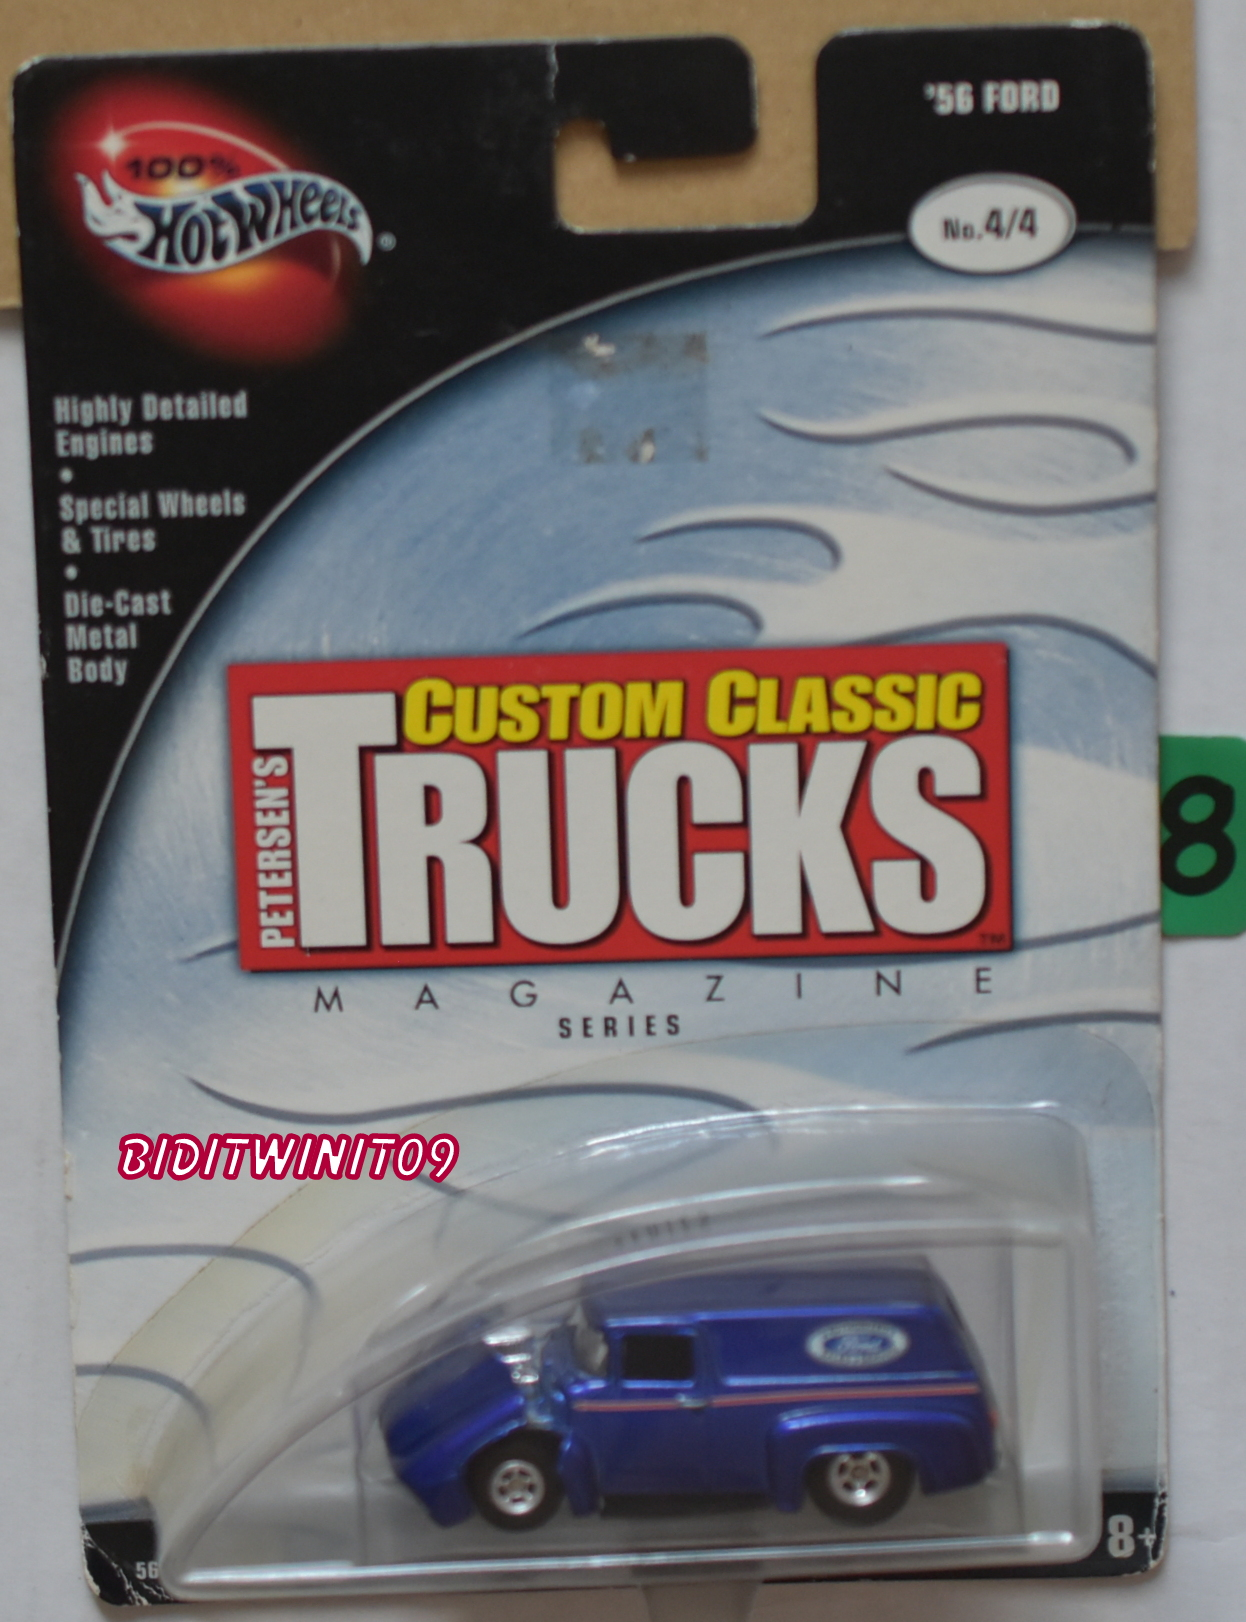 100% HOT WHEELS CUSTOM CLASSIC TRUCKS '56 FORD #4/4 BLUE